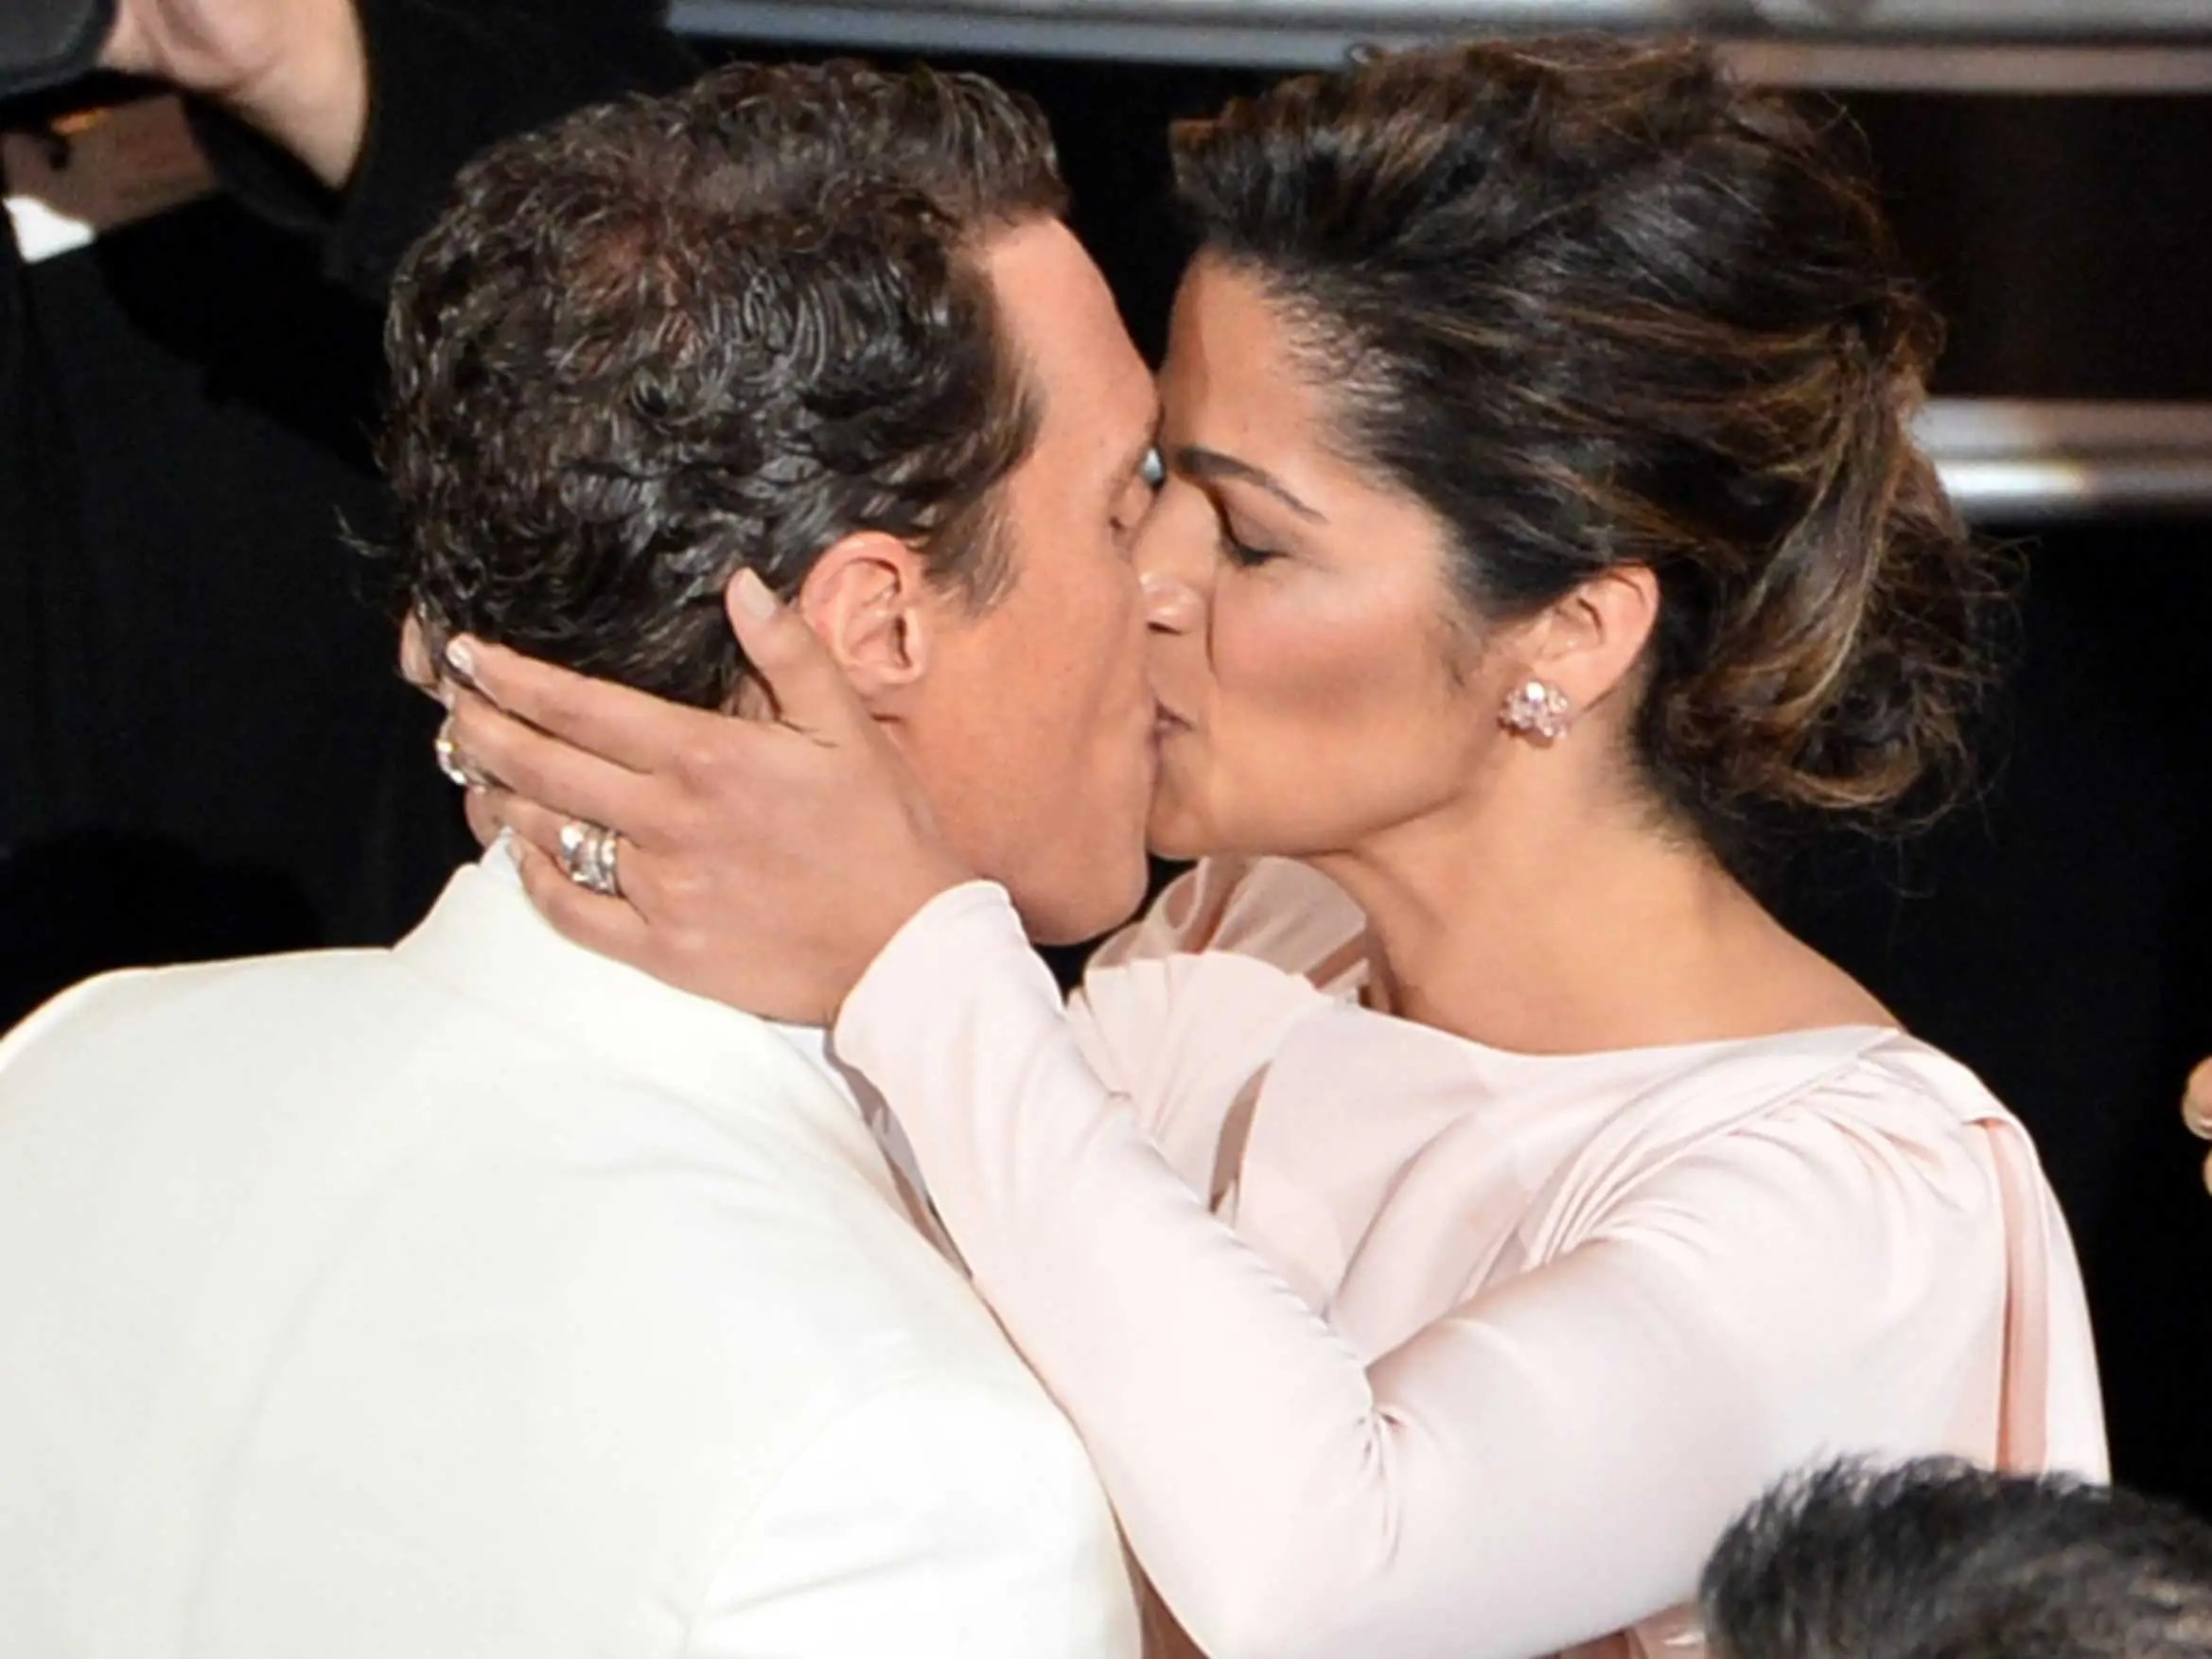 Matthew McConaughey had a tender moment with wife Camila Alves before accepting his Best Actor award.